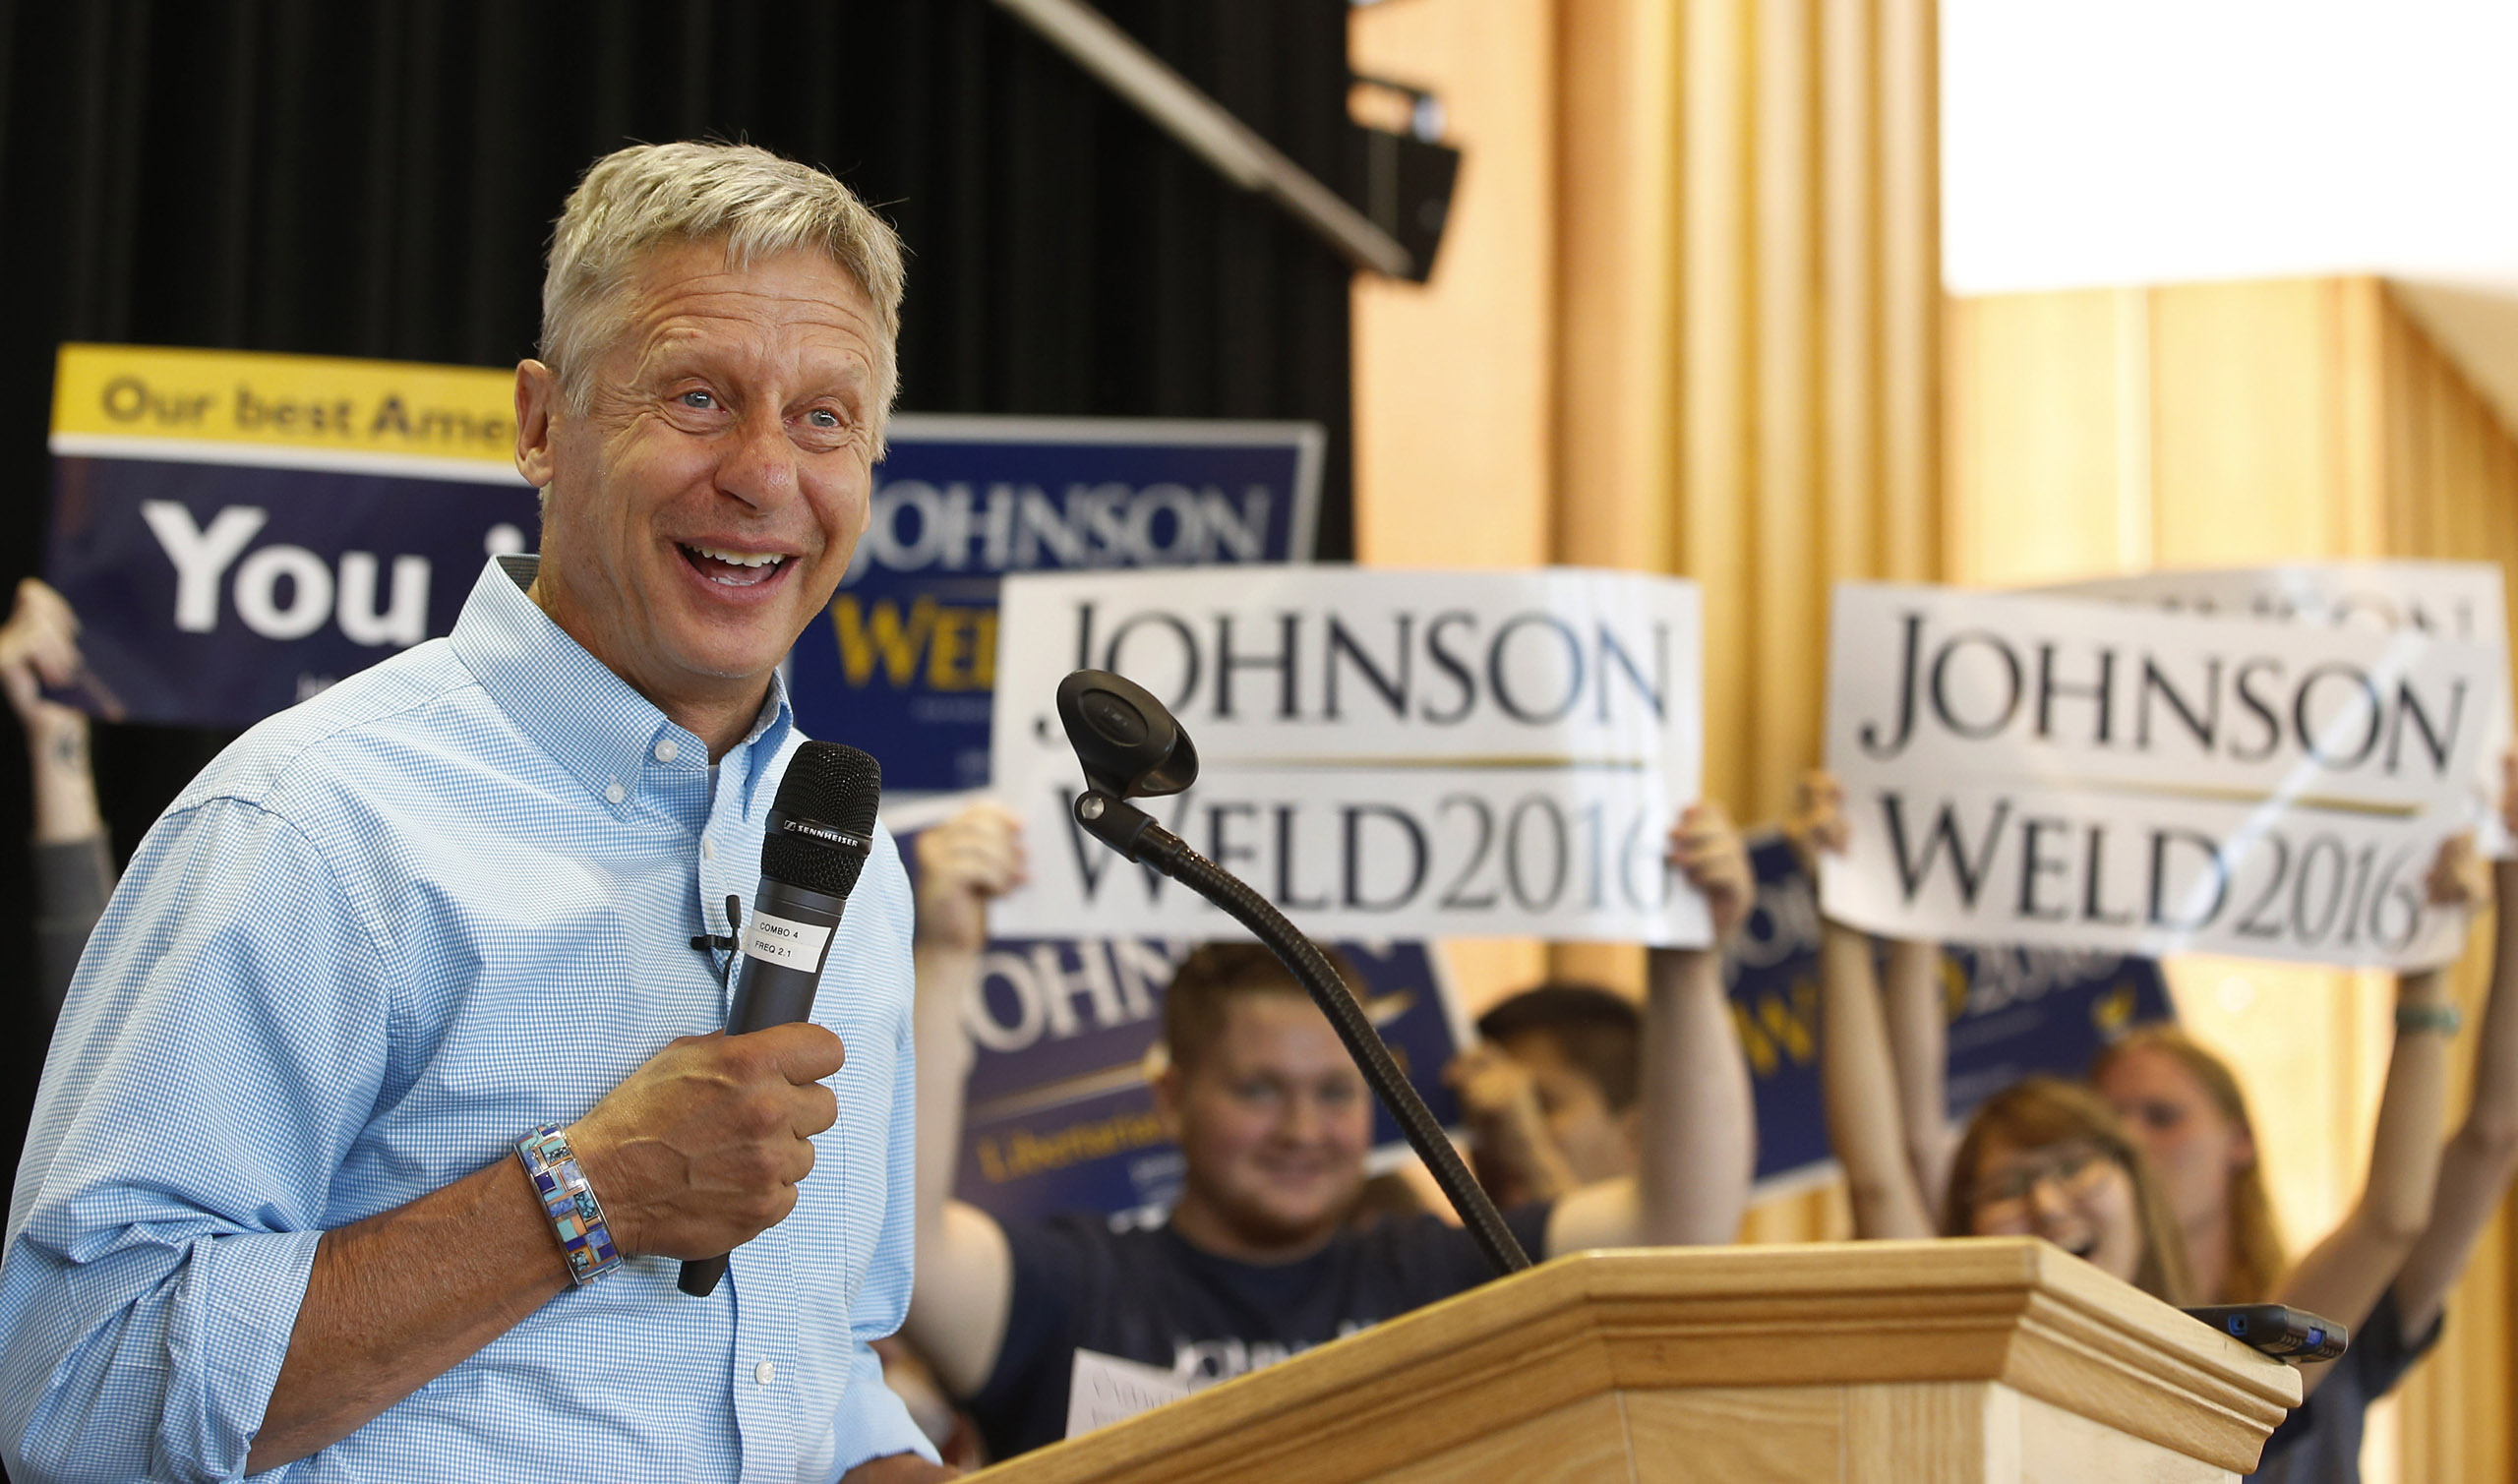 Libertarian presidential candidate Gary Johnson talks to a crowd of supporters at a rally in Salt Lake City, Utah, on Aug. 6, 2016.